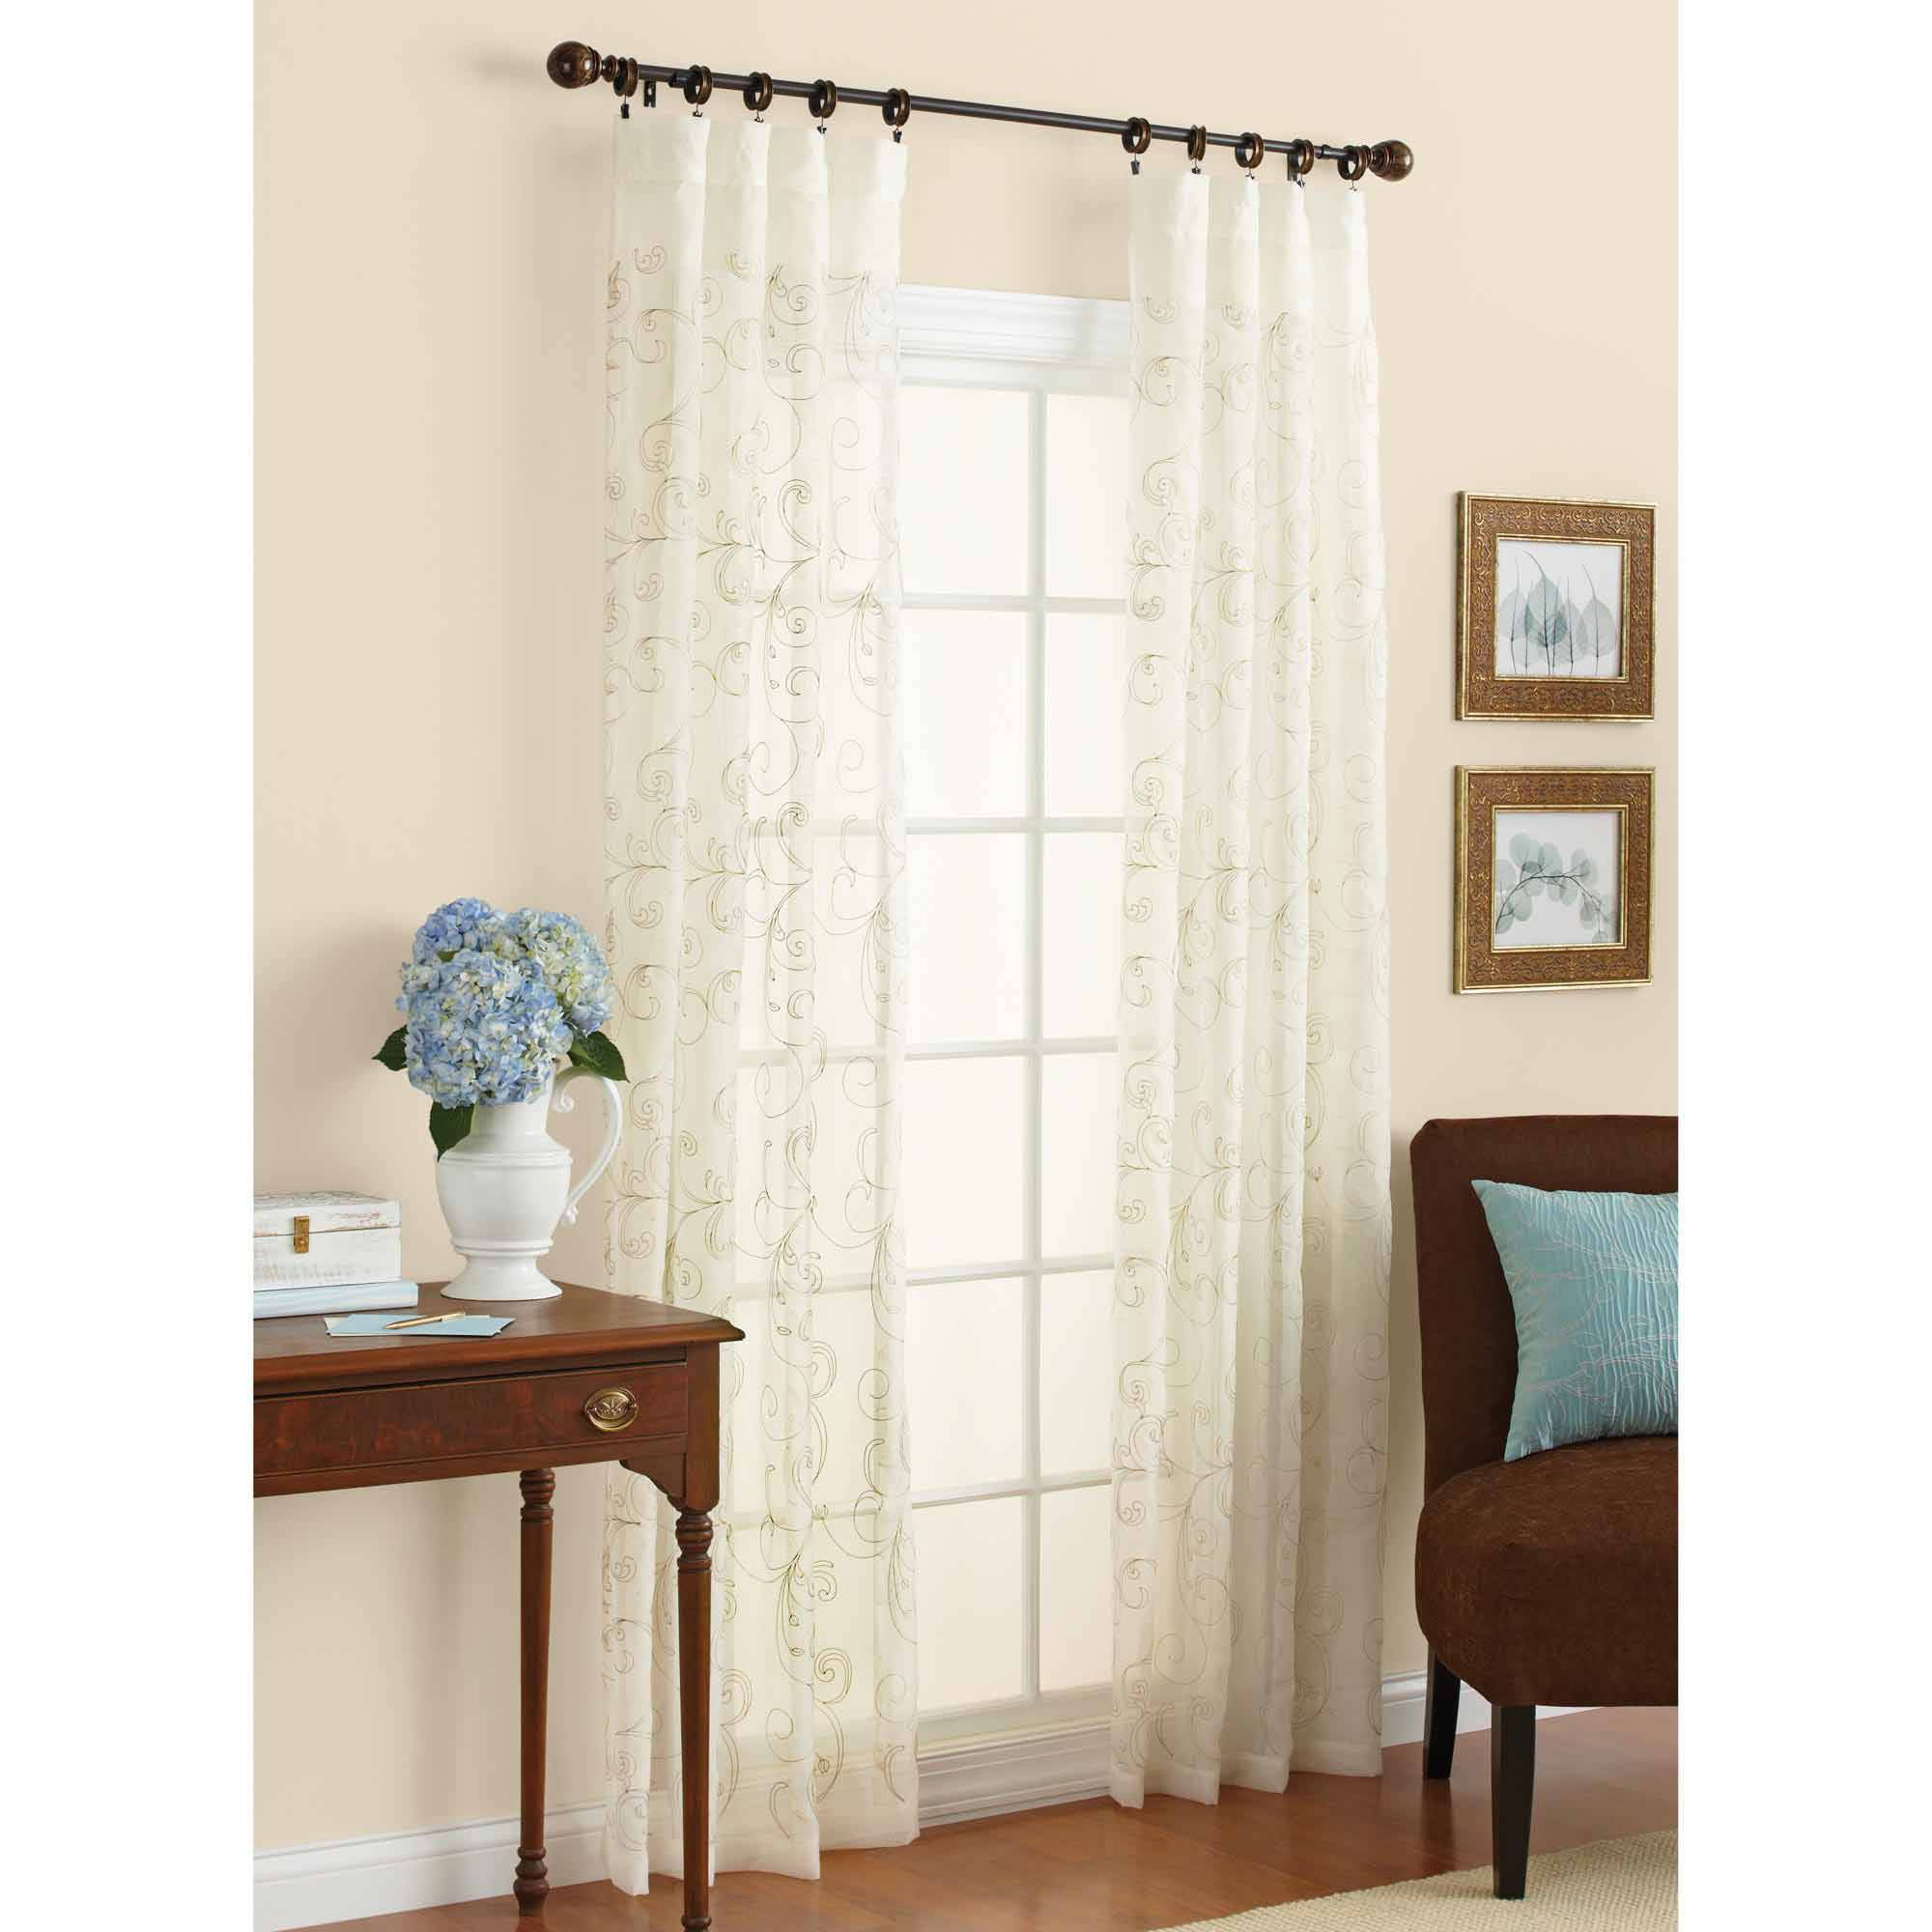 Good Better Homes And Gardens Embroidered Sheer Curtain Panel